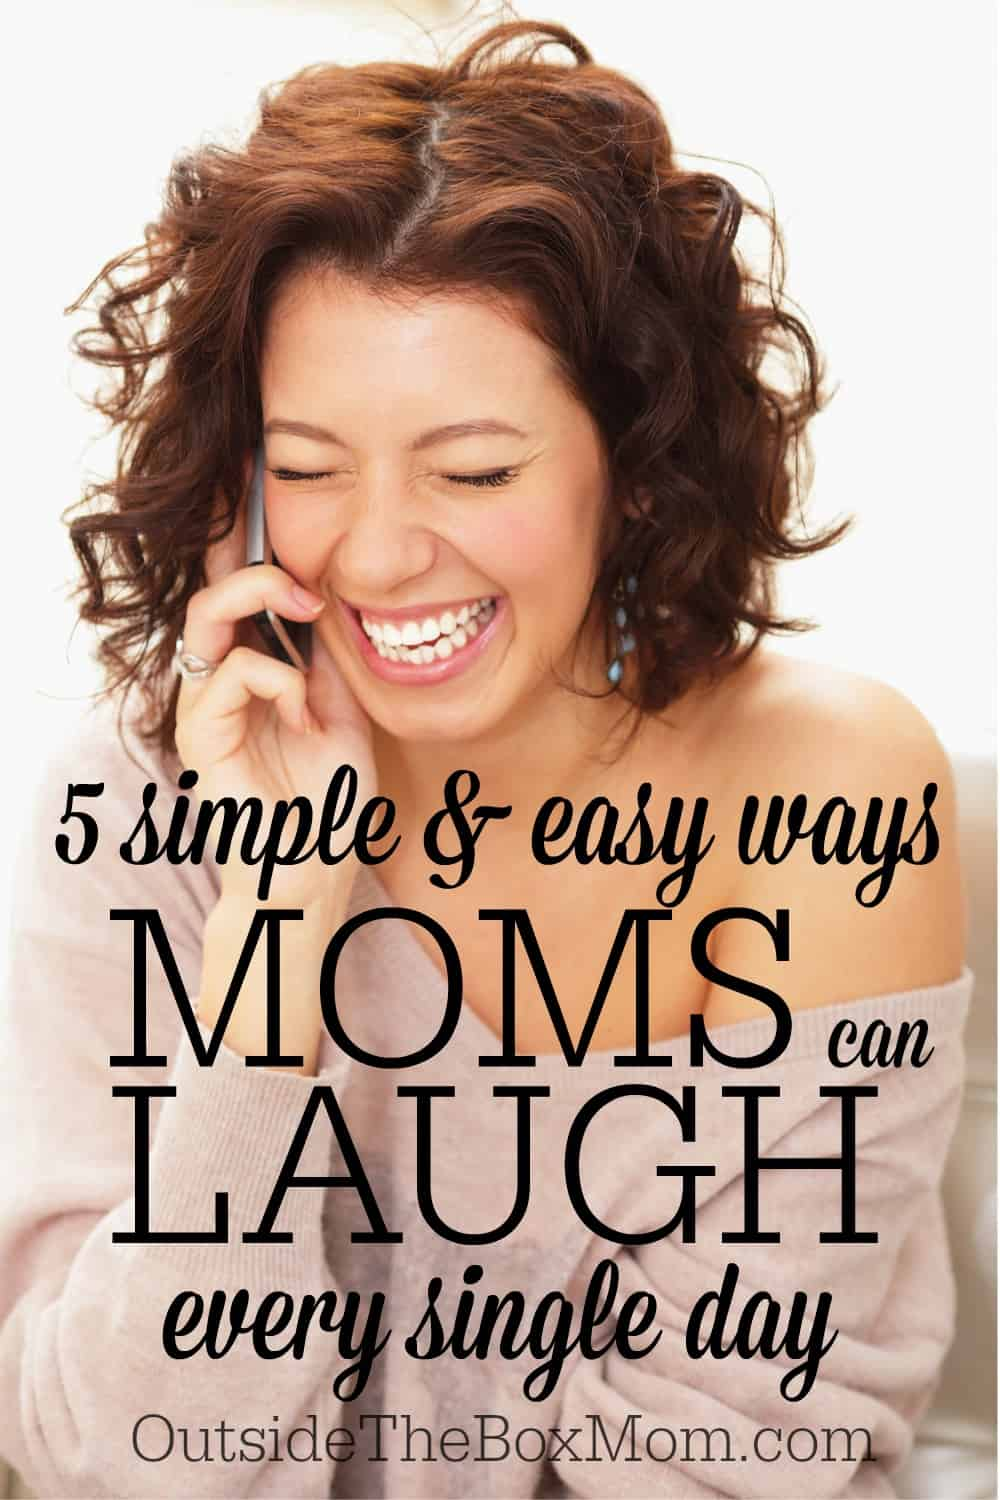 Moms are often so busy working, taking care of their families, preparing meals, or getting their home in shape that they don't take time to just be silly...or laugh. Here are five simple (and easy) ways moms can laugh (and should) everyday.